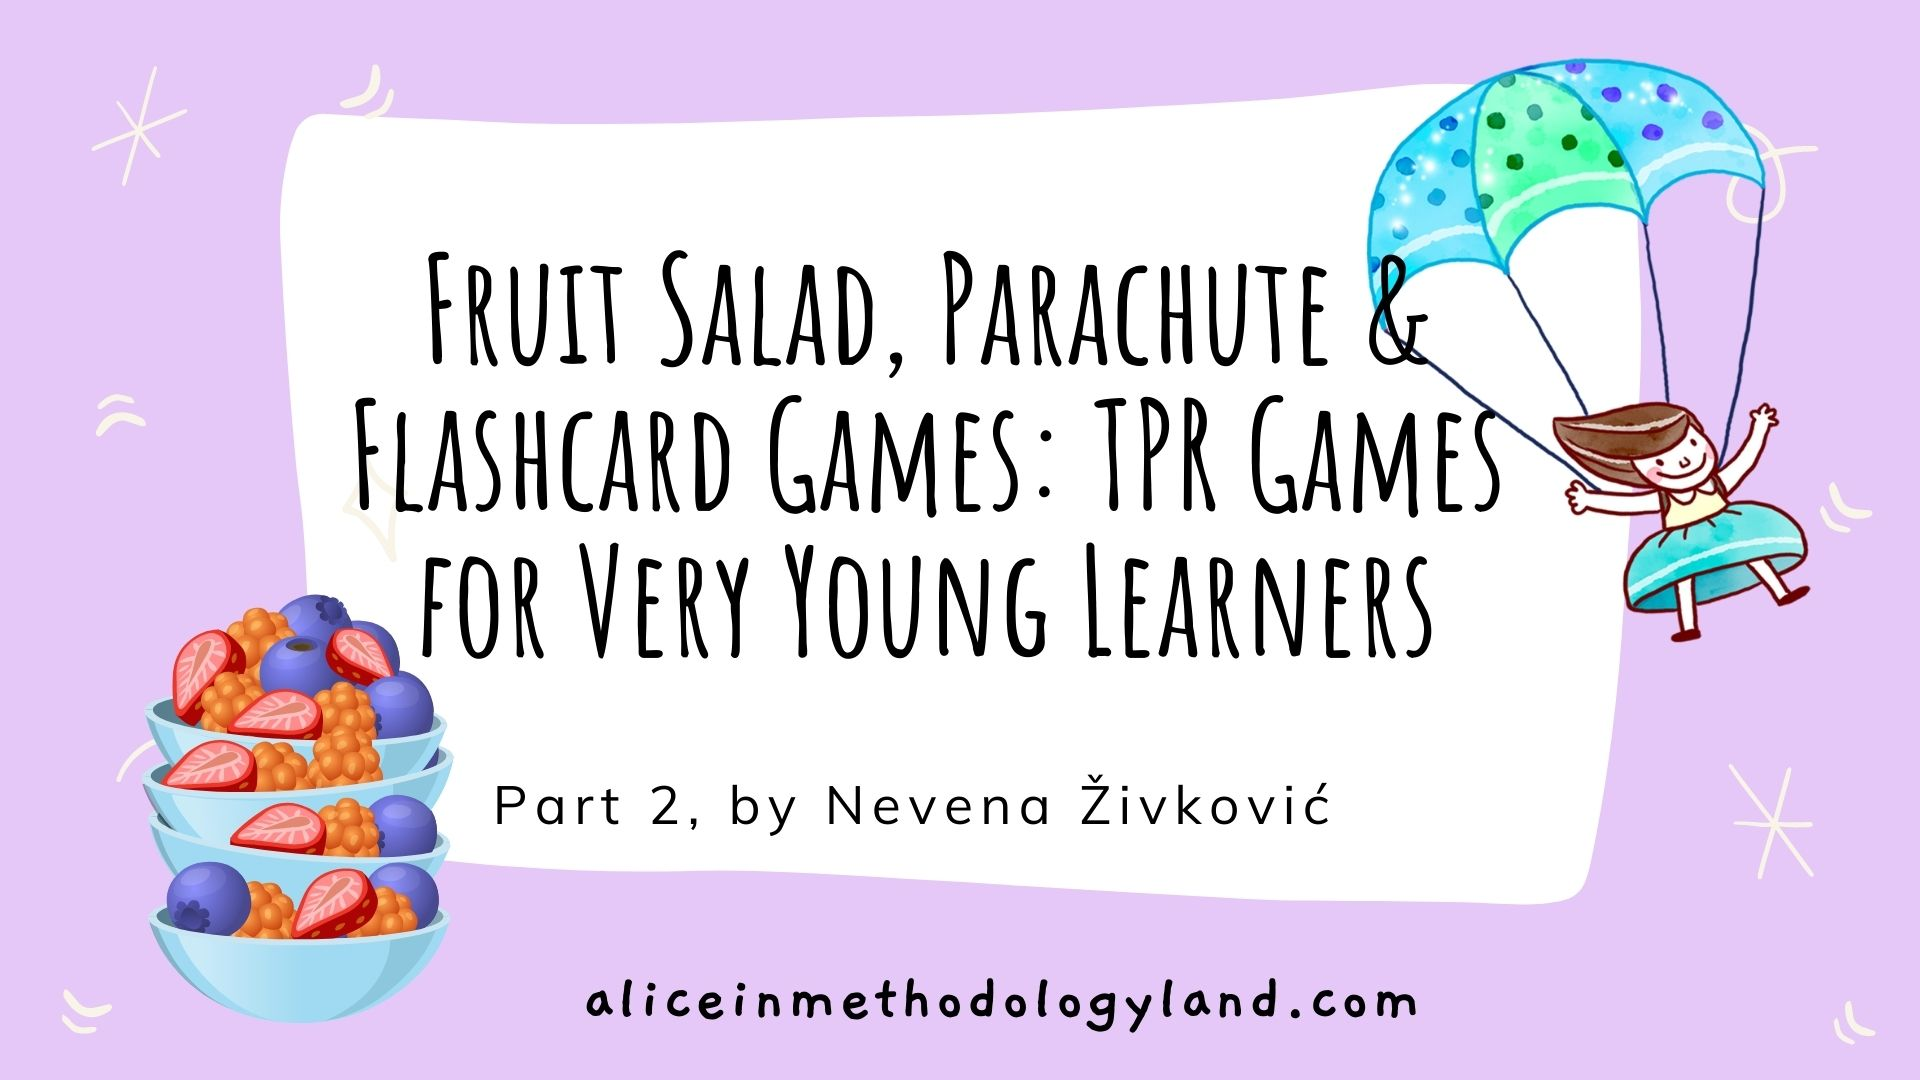 Fruit Salad, Parachute & Flashcard: TPR Games for Very Young Learners, Part 2 by Nevena Živković